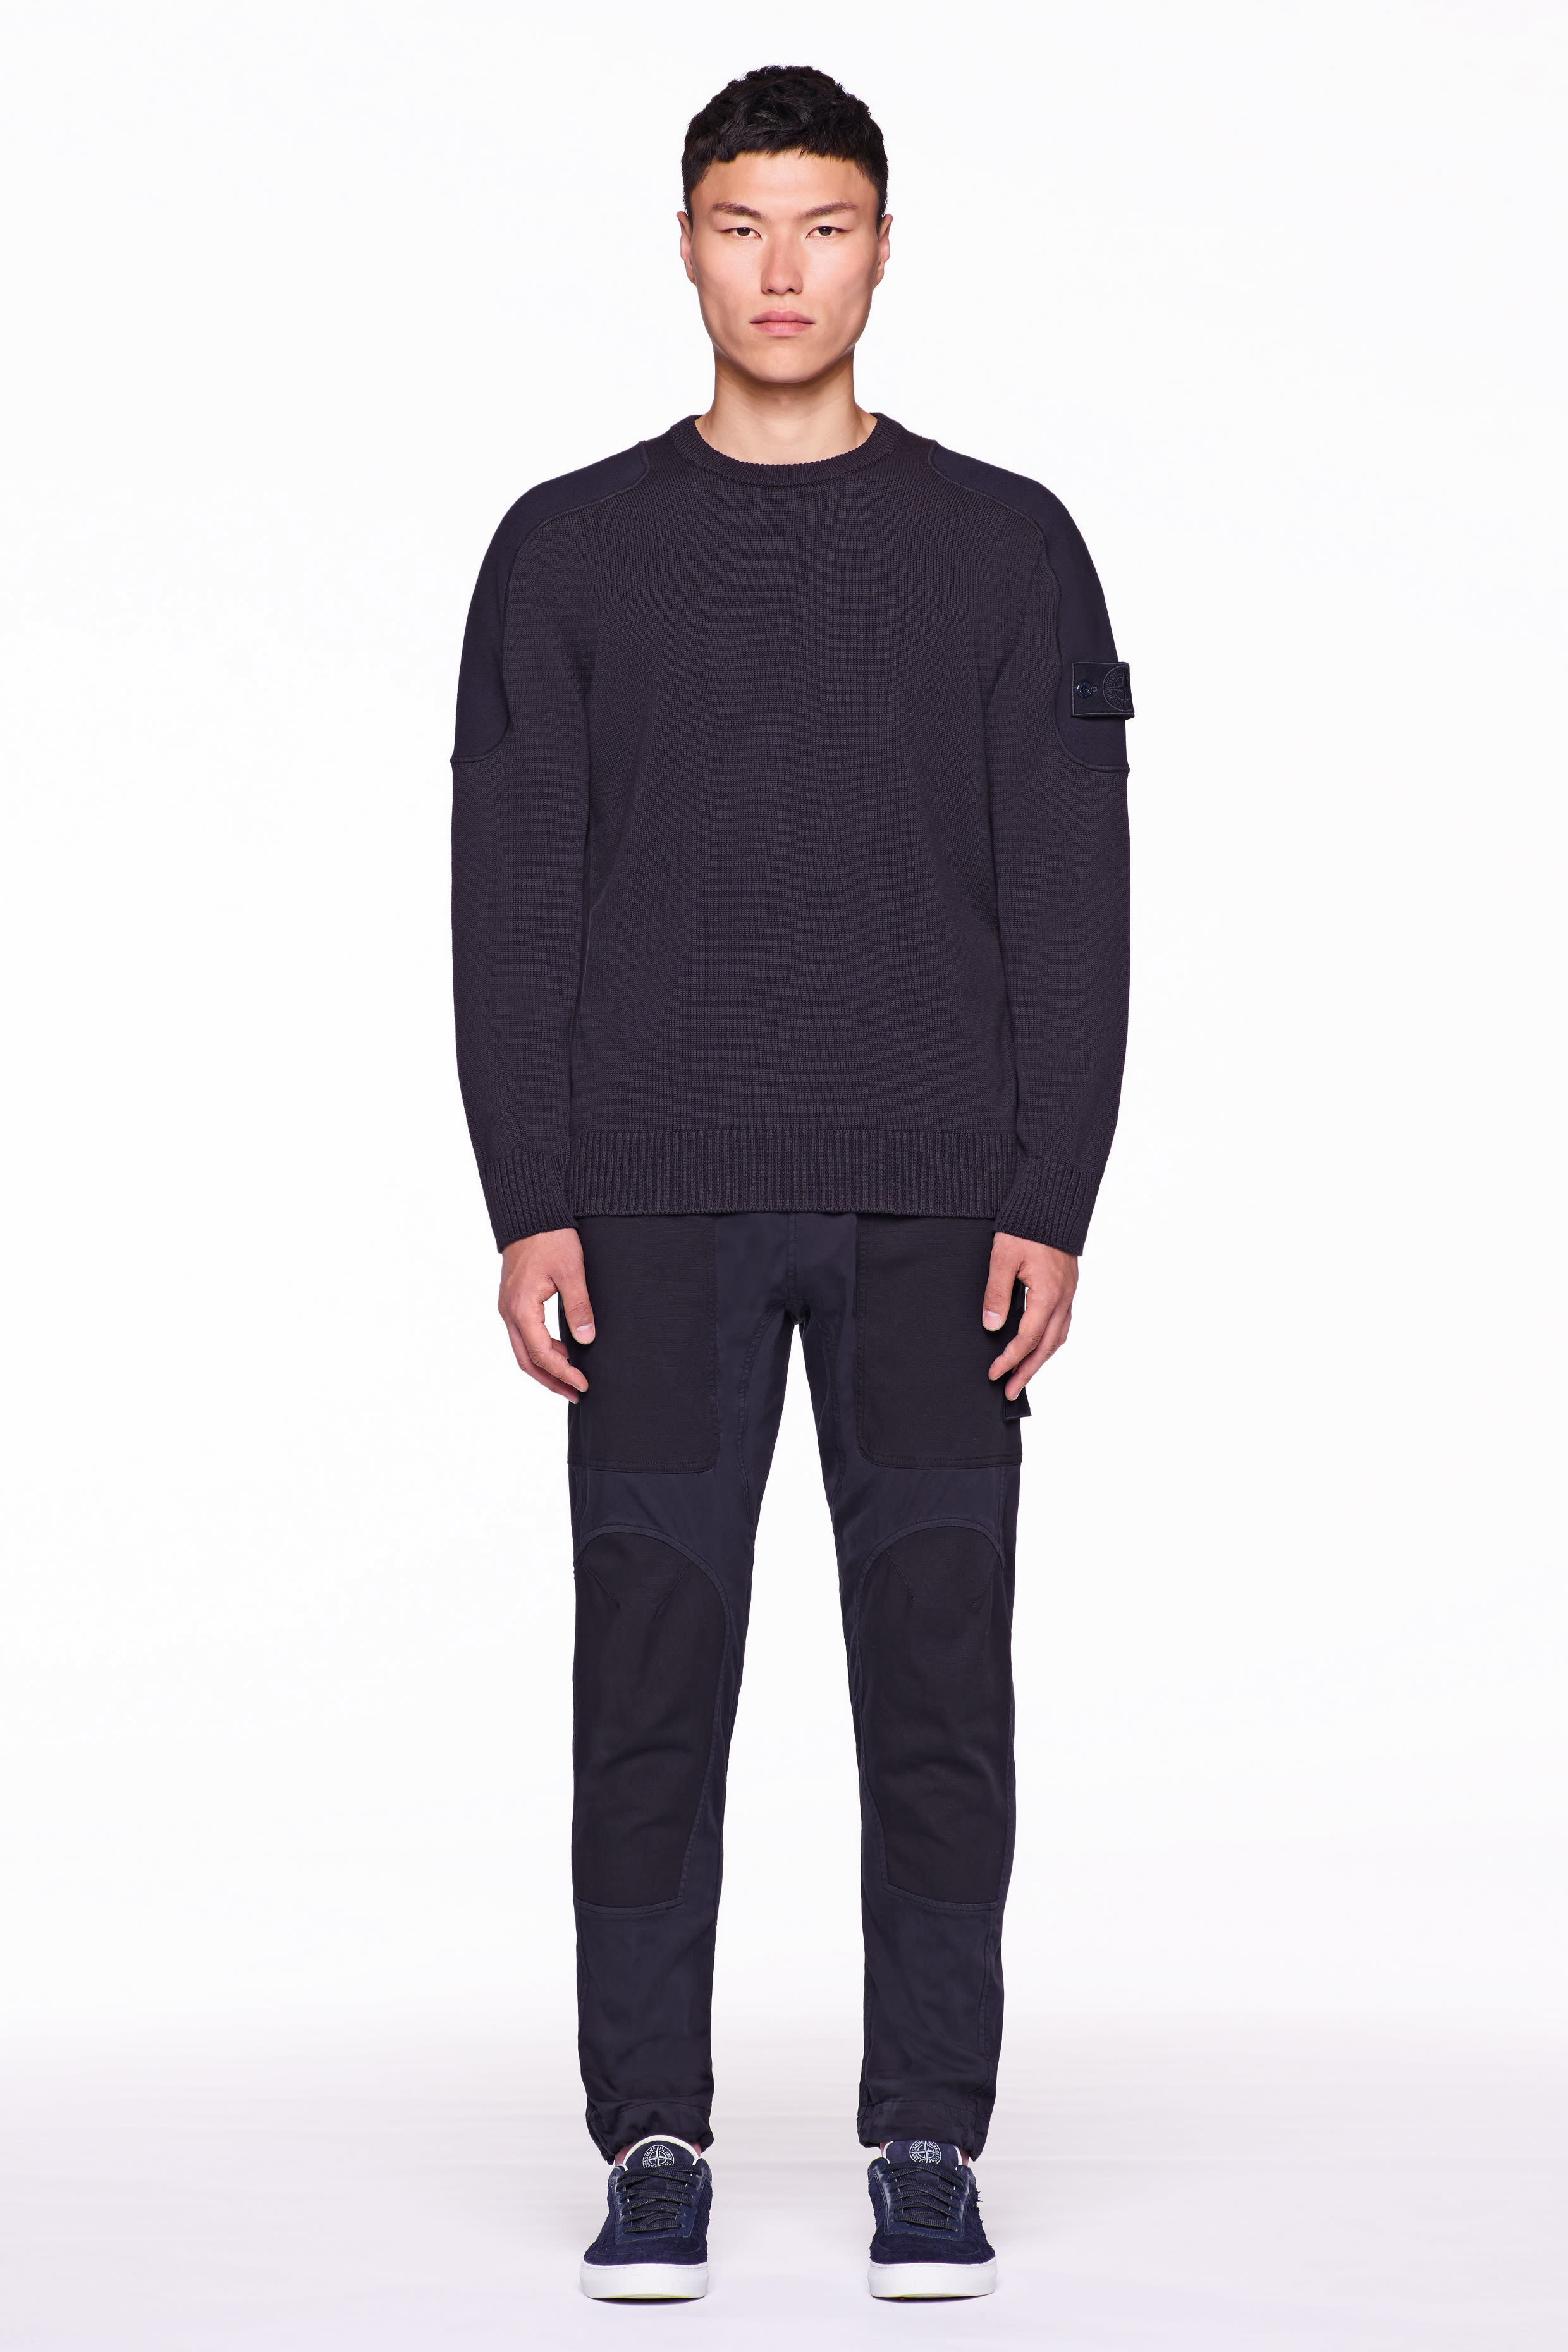 ss18-si2